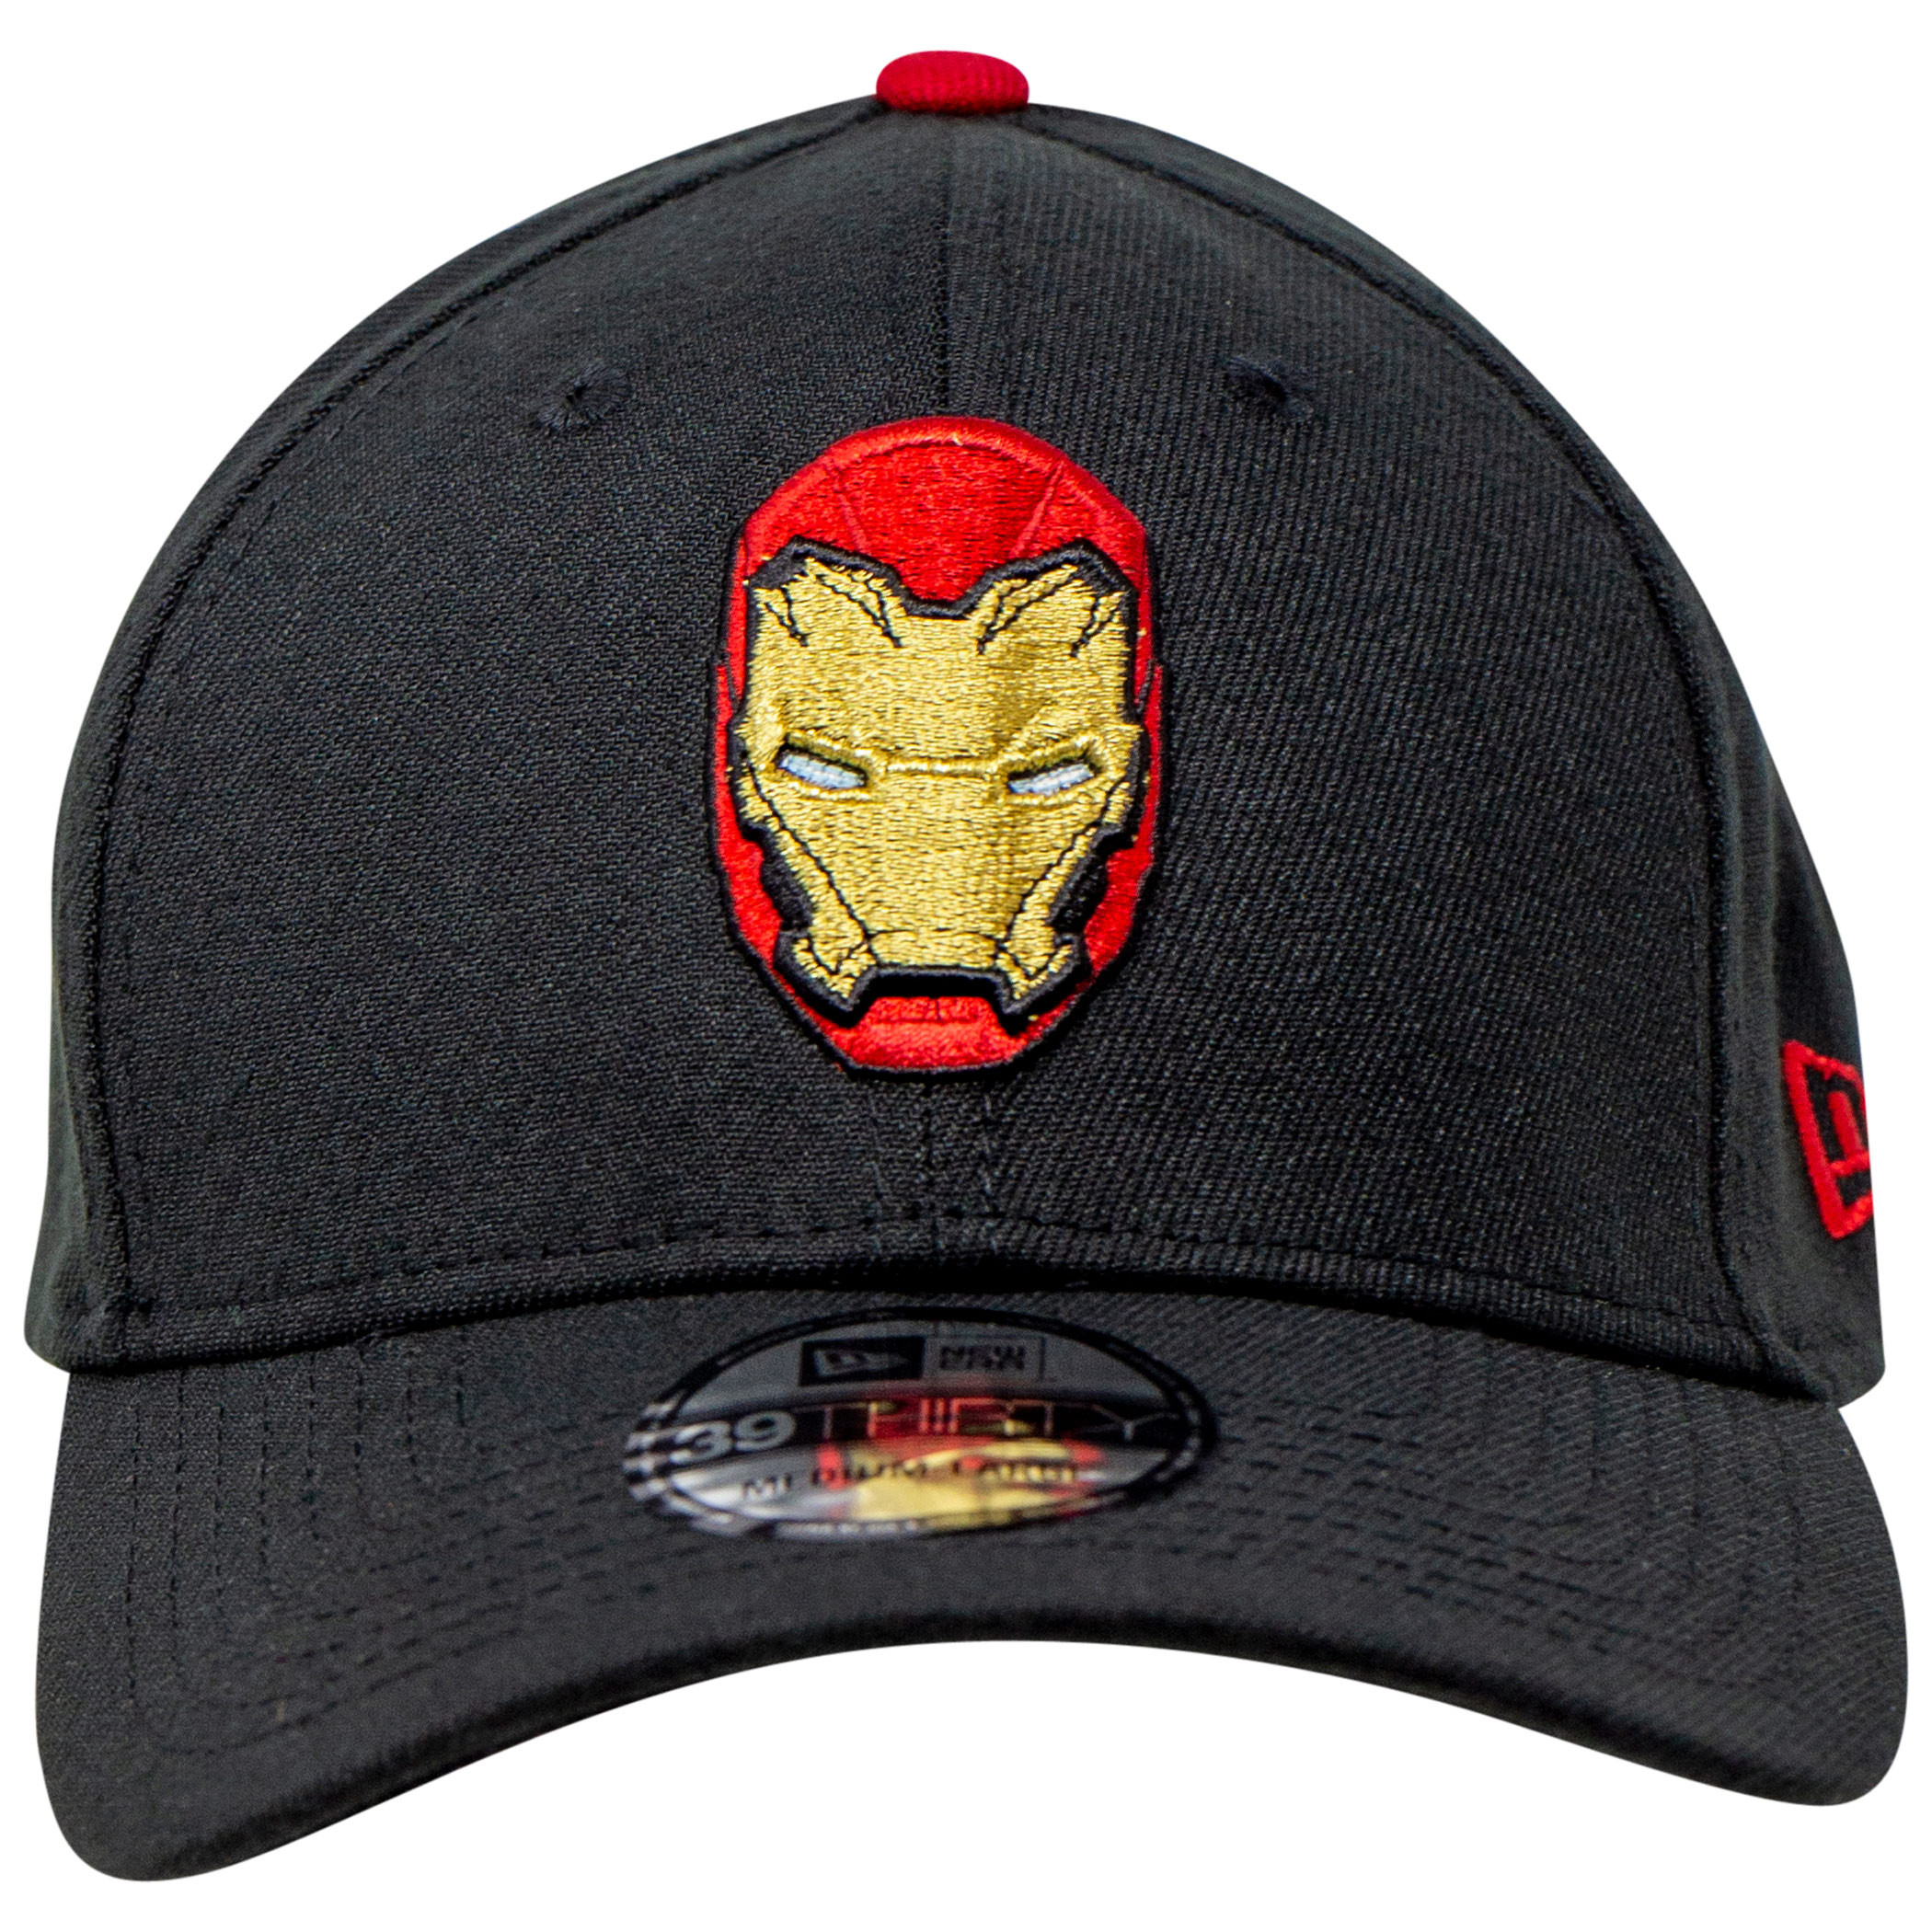 Iron Man Helmet with Rear Arc Reactor New Era 39Thirty Fitted Hat